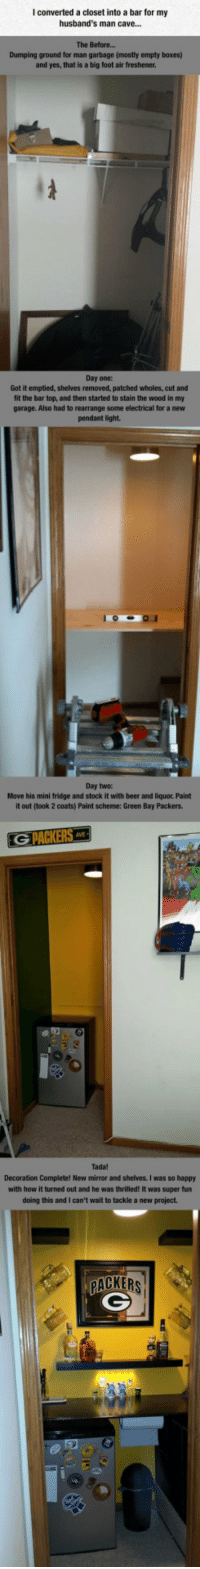 Beer, Green Bay Packers, and Happy: I converted a closet into a bar for my  husband's man cave...  The Before...  Dumping ground for man garbage (mostly empty boxes)  and yes, that is a big foot air freshener.  Day one:  Got it emptied, shelves removed, patched wholes, cut and  fit the bar top, and then started to stain the wood in my  garage. Also had to rearrange some electrical for a new  pendant light.  Day two:  Move his mini fridge and stock it with beer and liquor. Paint  it out (took 2 coats) Paint scheme: Green Bay Packers.  Tada!  Decoration Completel New mirror and shelves. I was so happy  with how it turned out and he was thrilled! It was super fun  doing this and I can't wait to tackle a new project.  PACKERS <p>Magnificent Man Cave.</p>